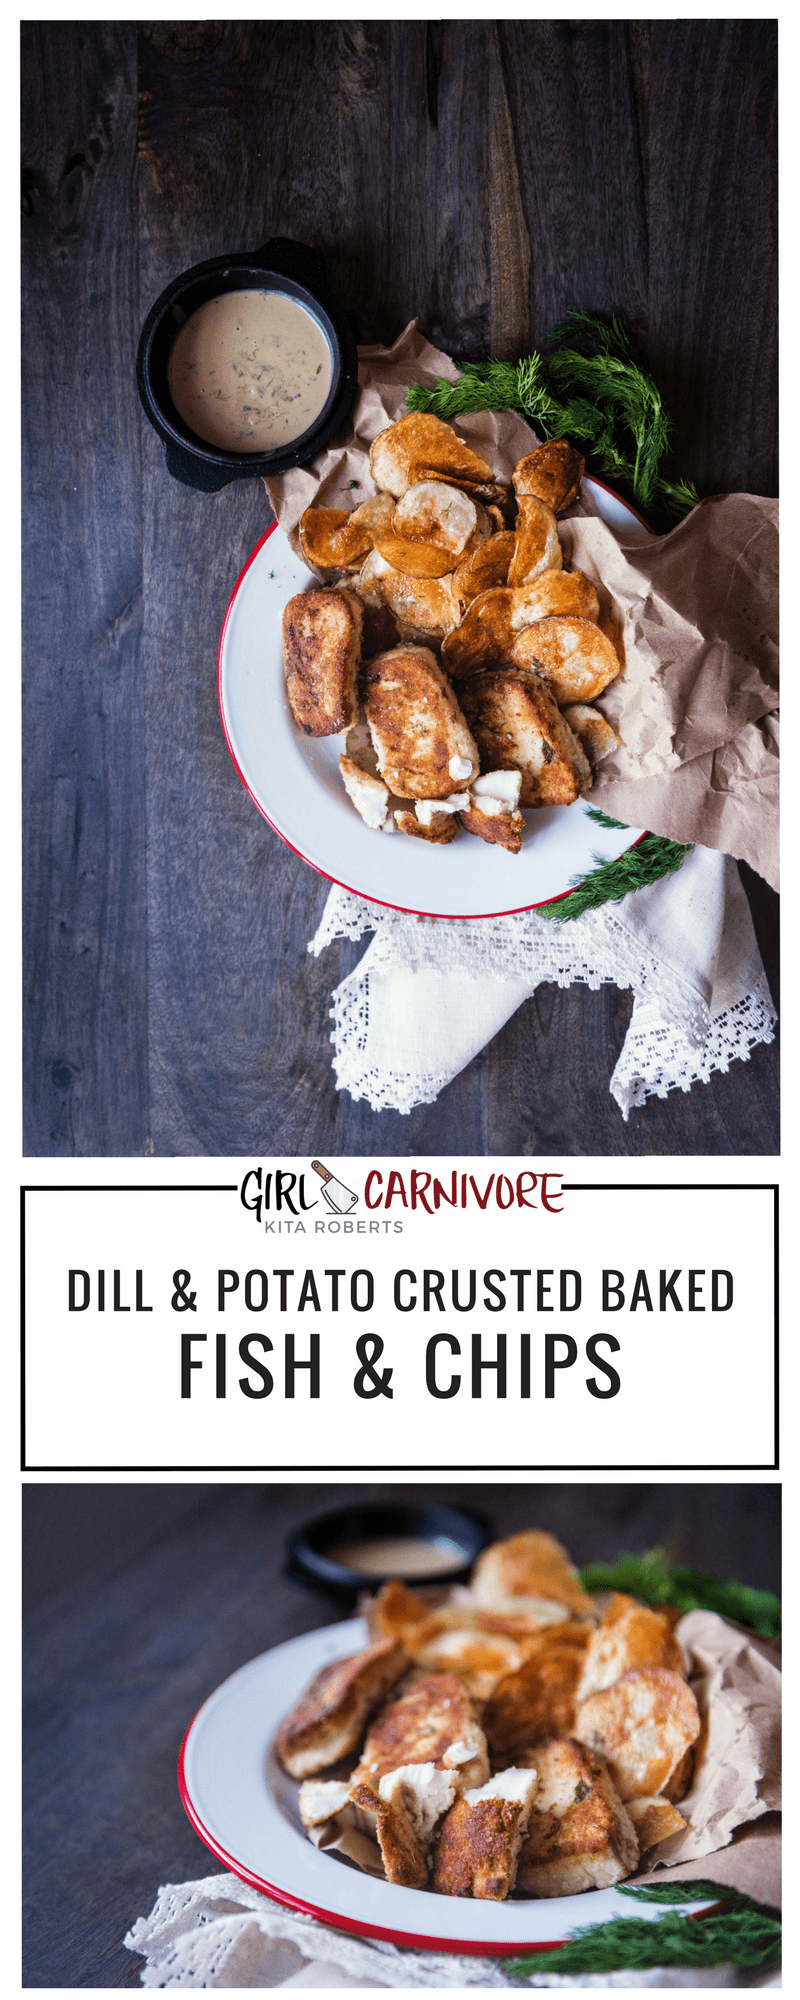 Potato Crusted Fish and Chips Recipe | Kita Roberts GirlCarnivore.com